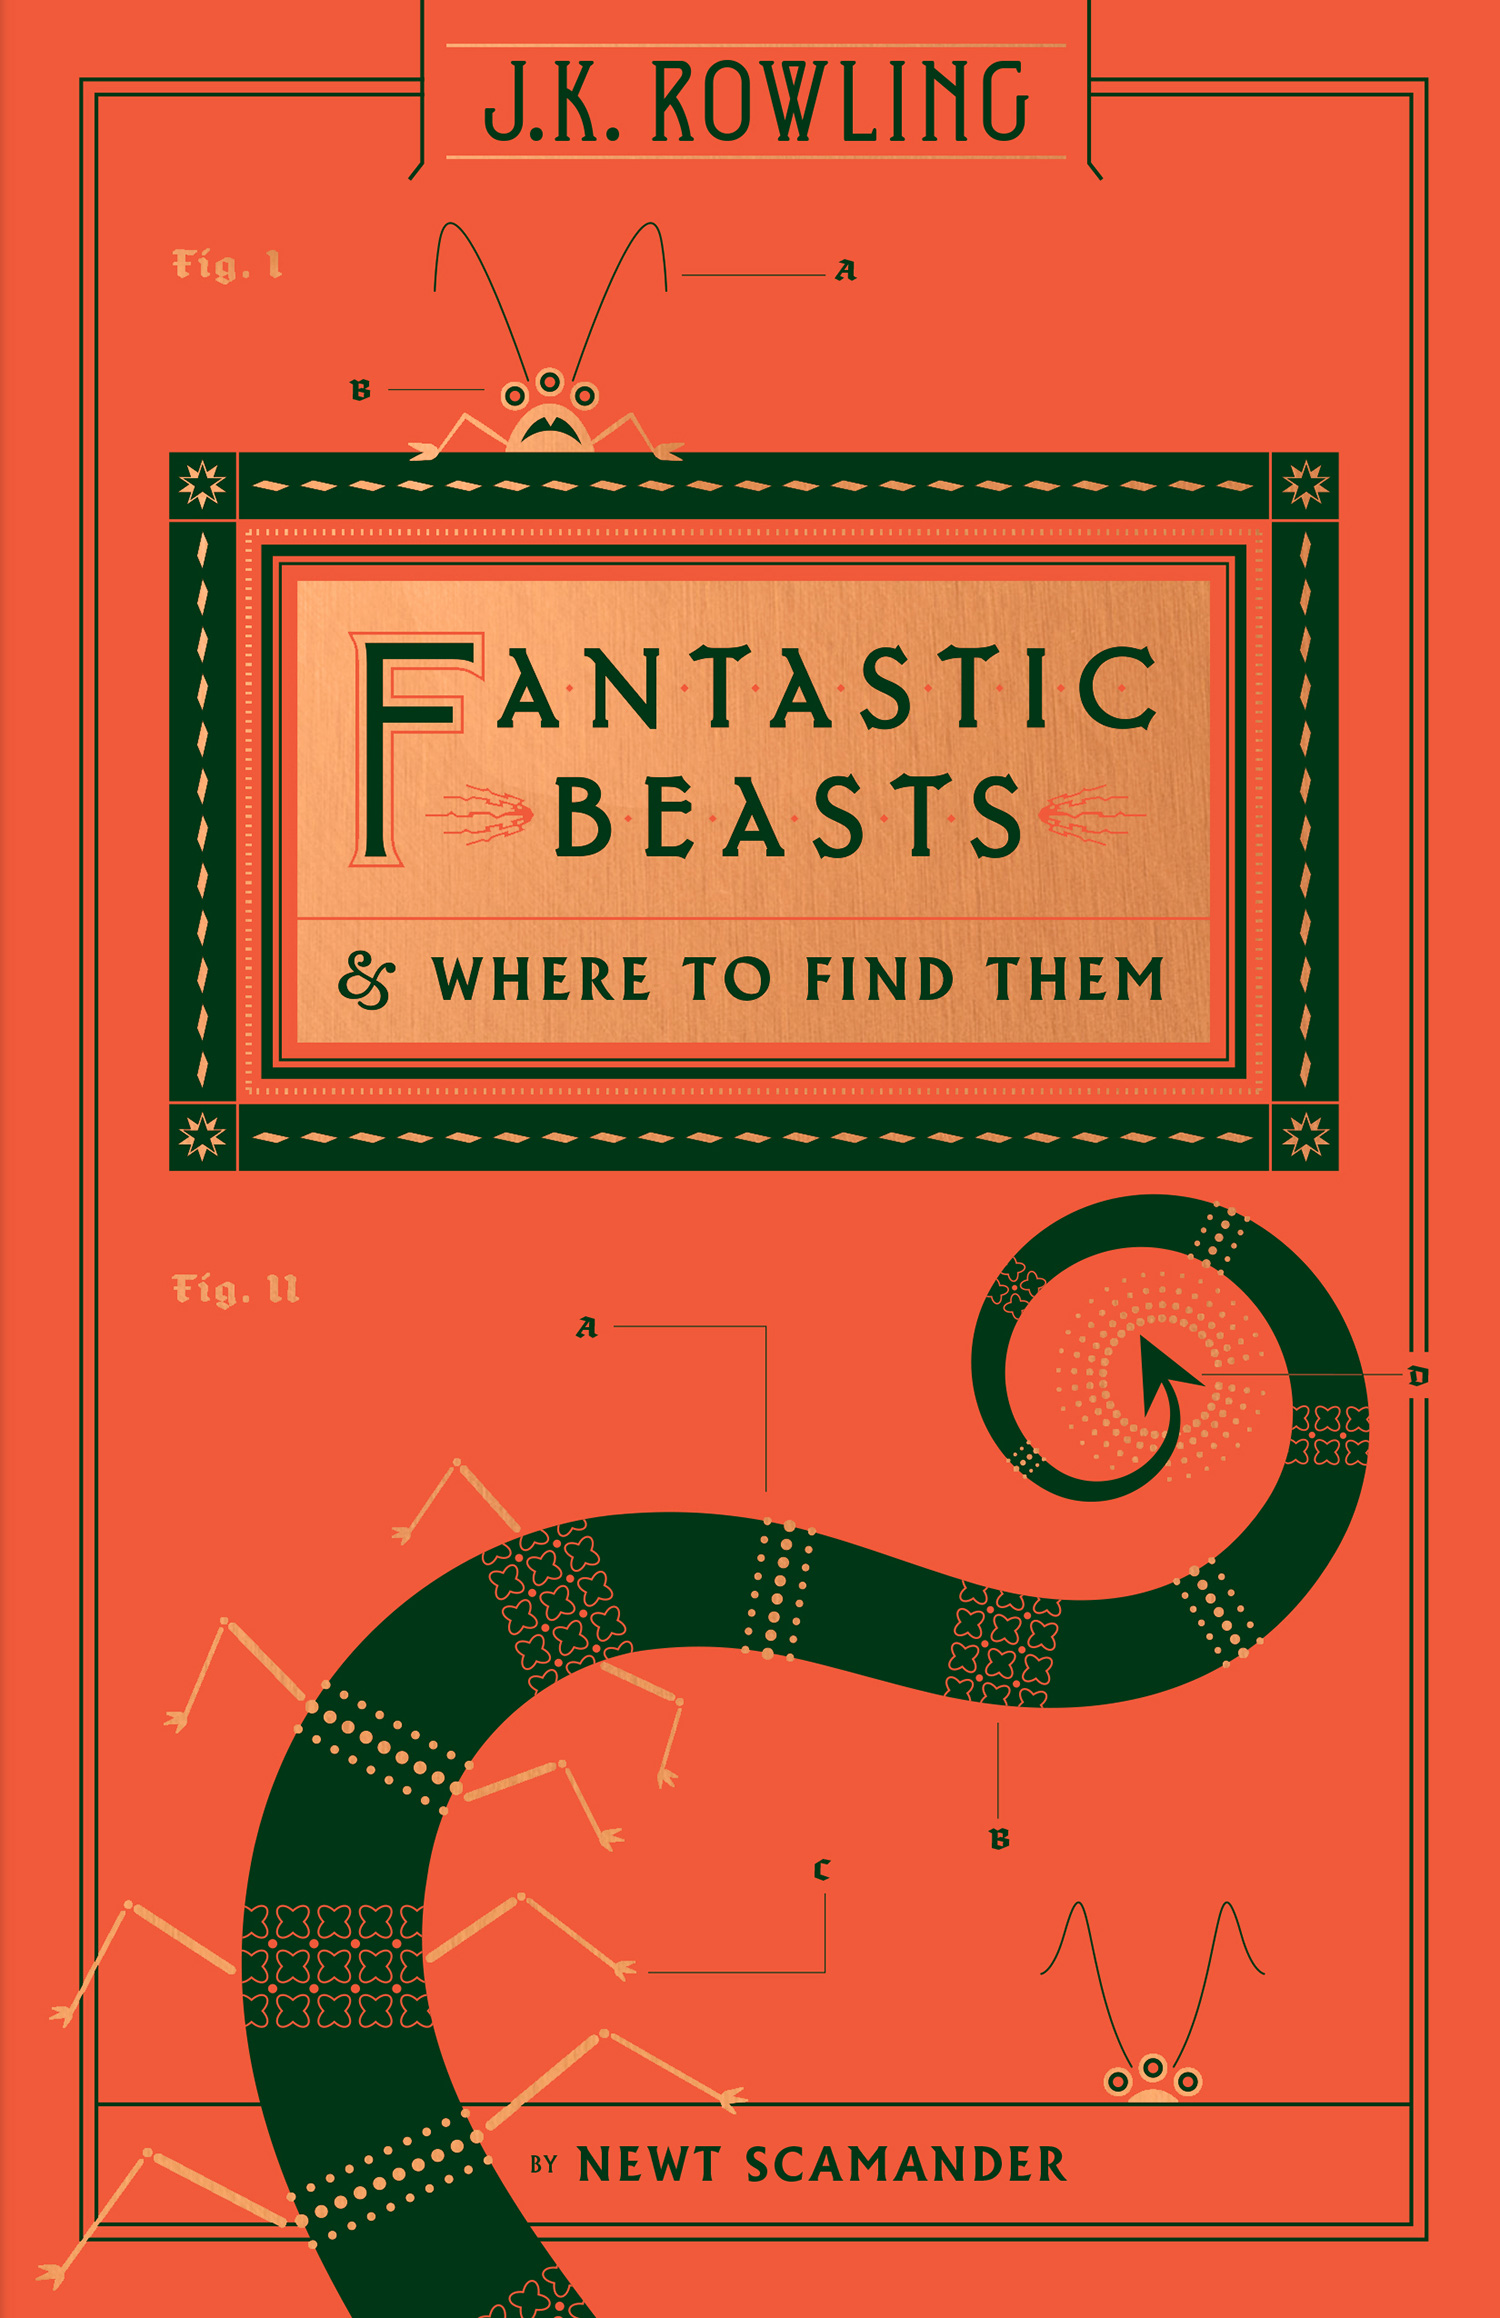 'Fantastic Beasts and Where to Find Them' Hogwarts Library edition (US)